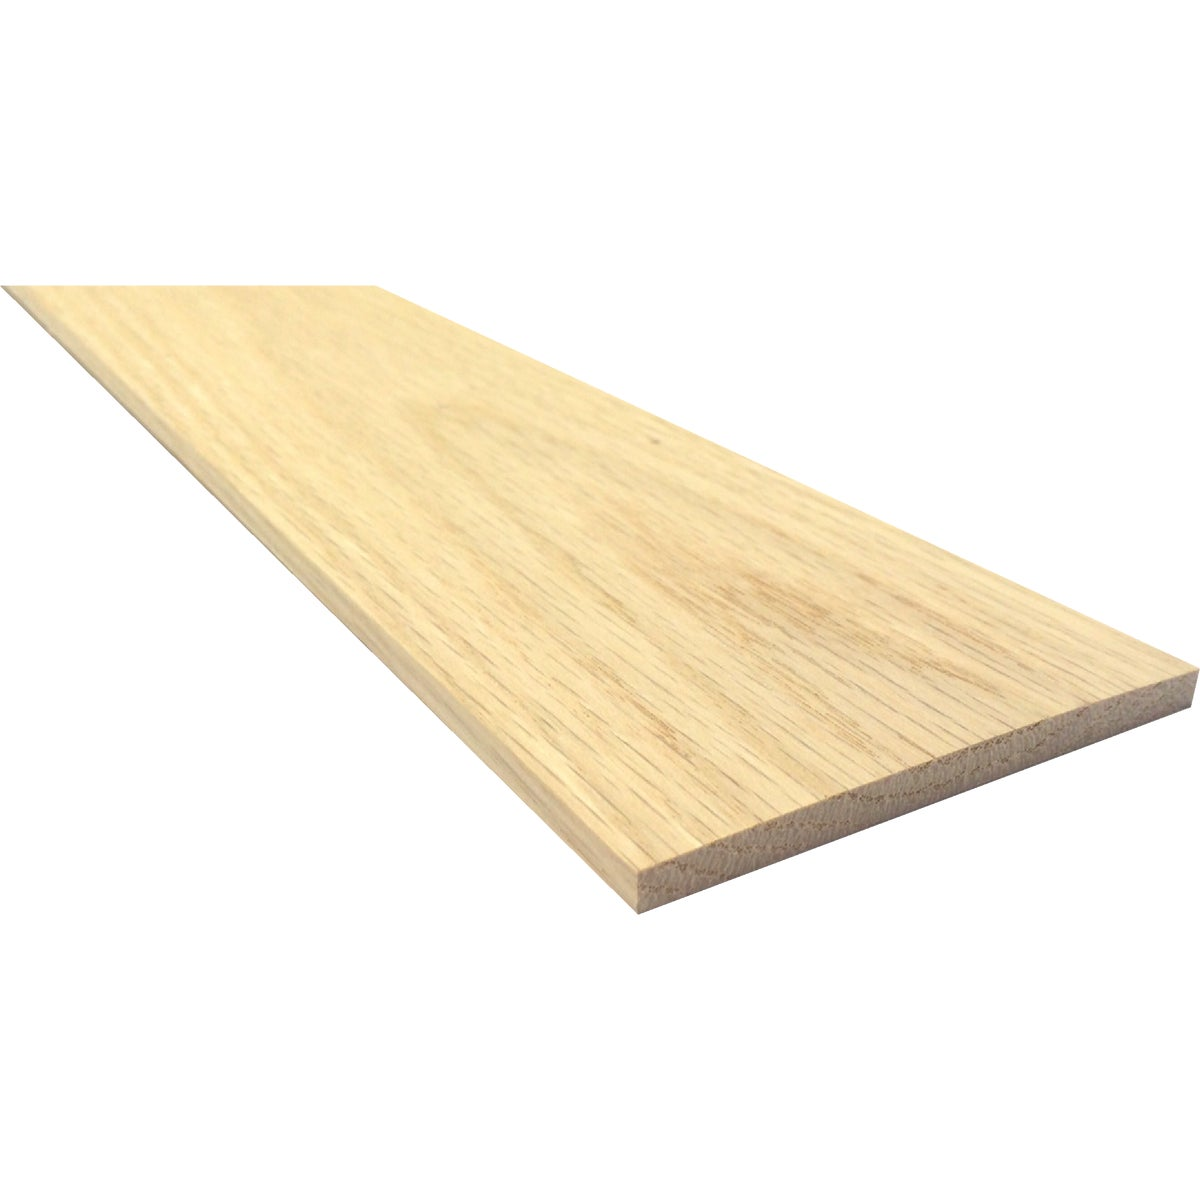 "1/4X6""X4' OAK BOARD - PB19511 by Waddell Mfg Company"